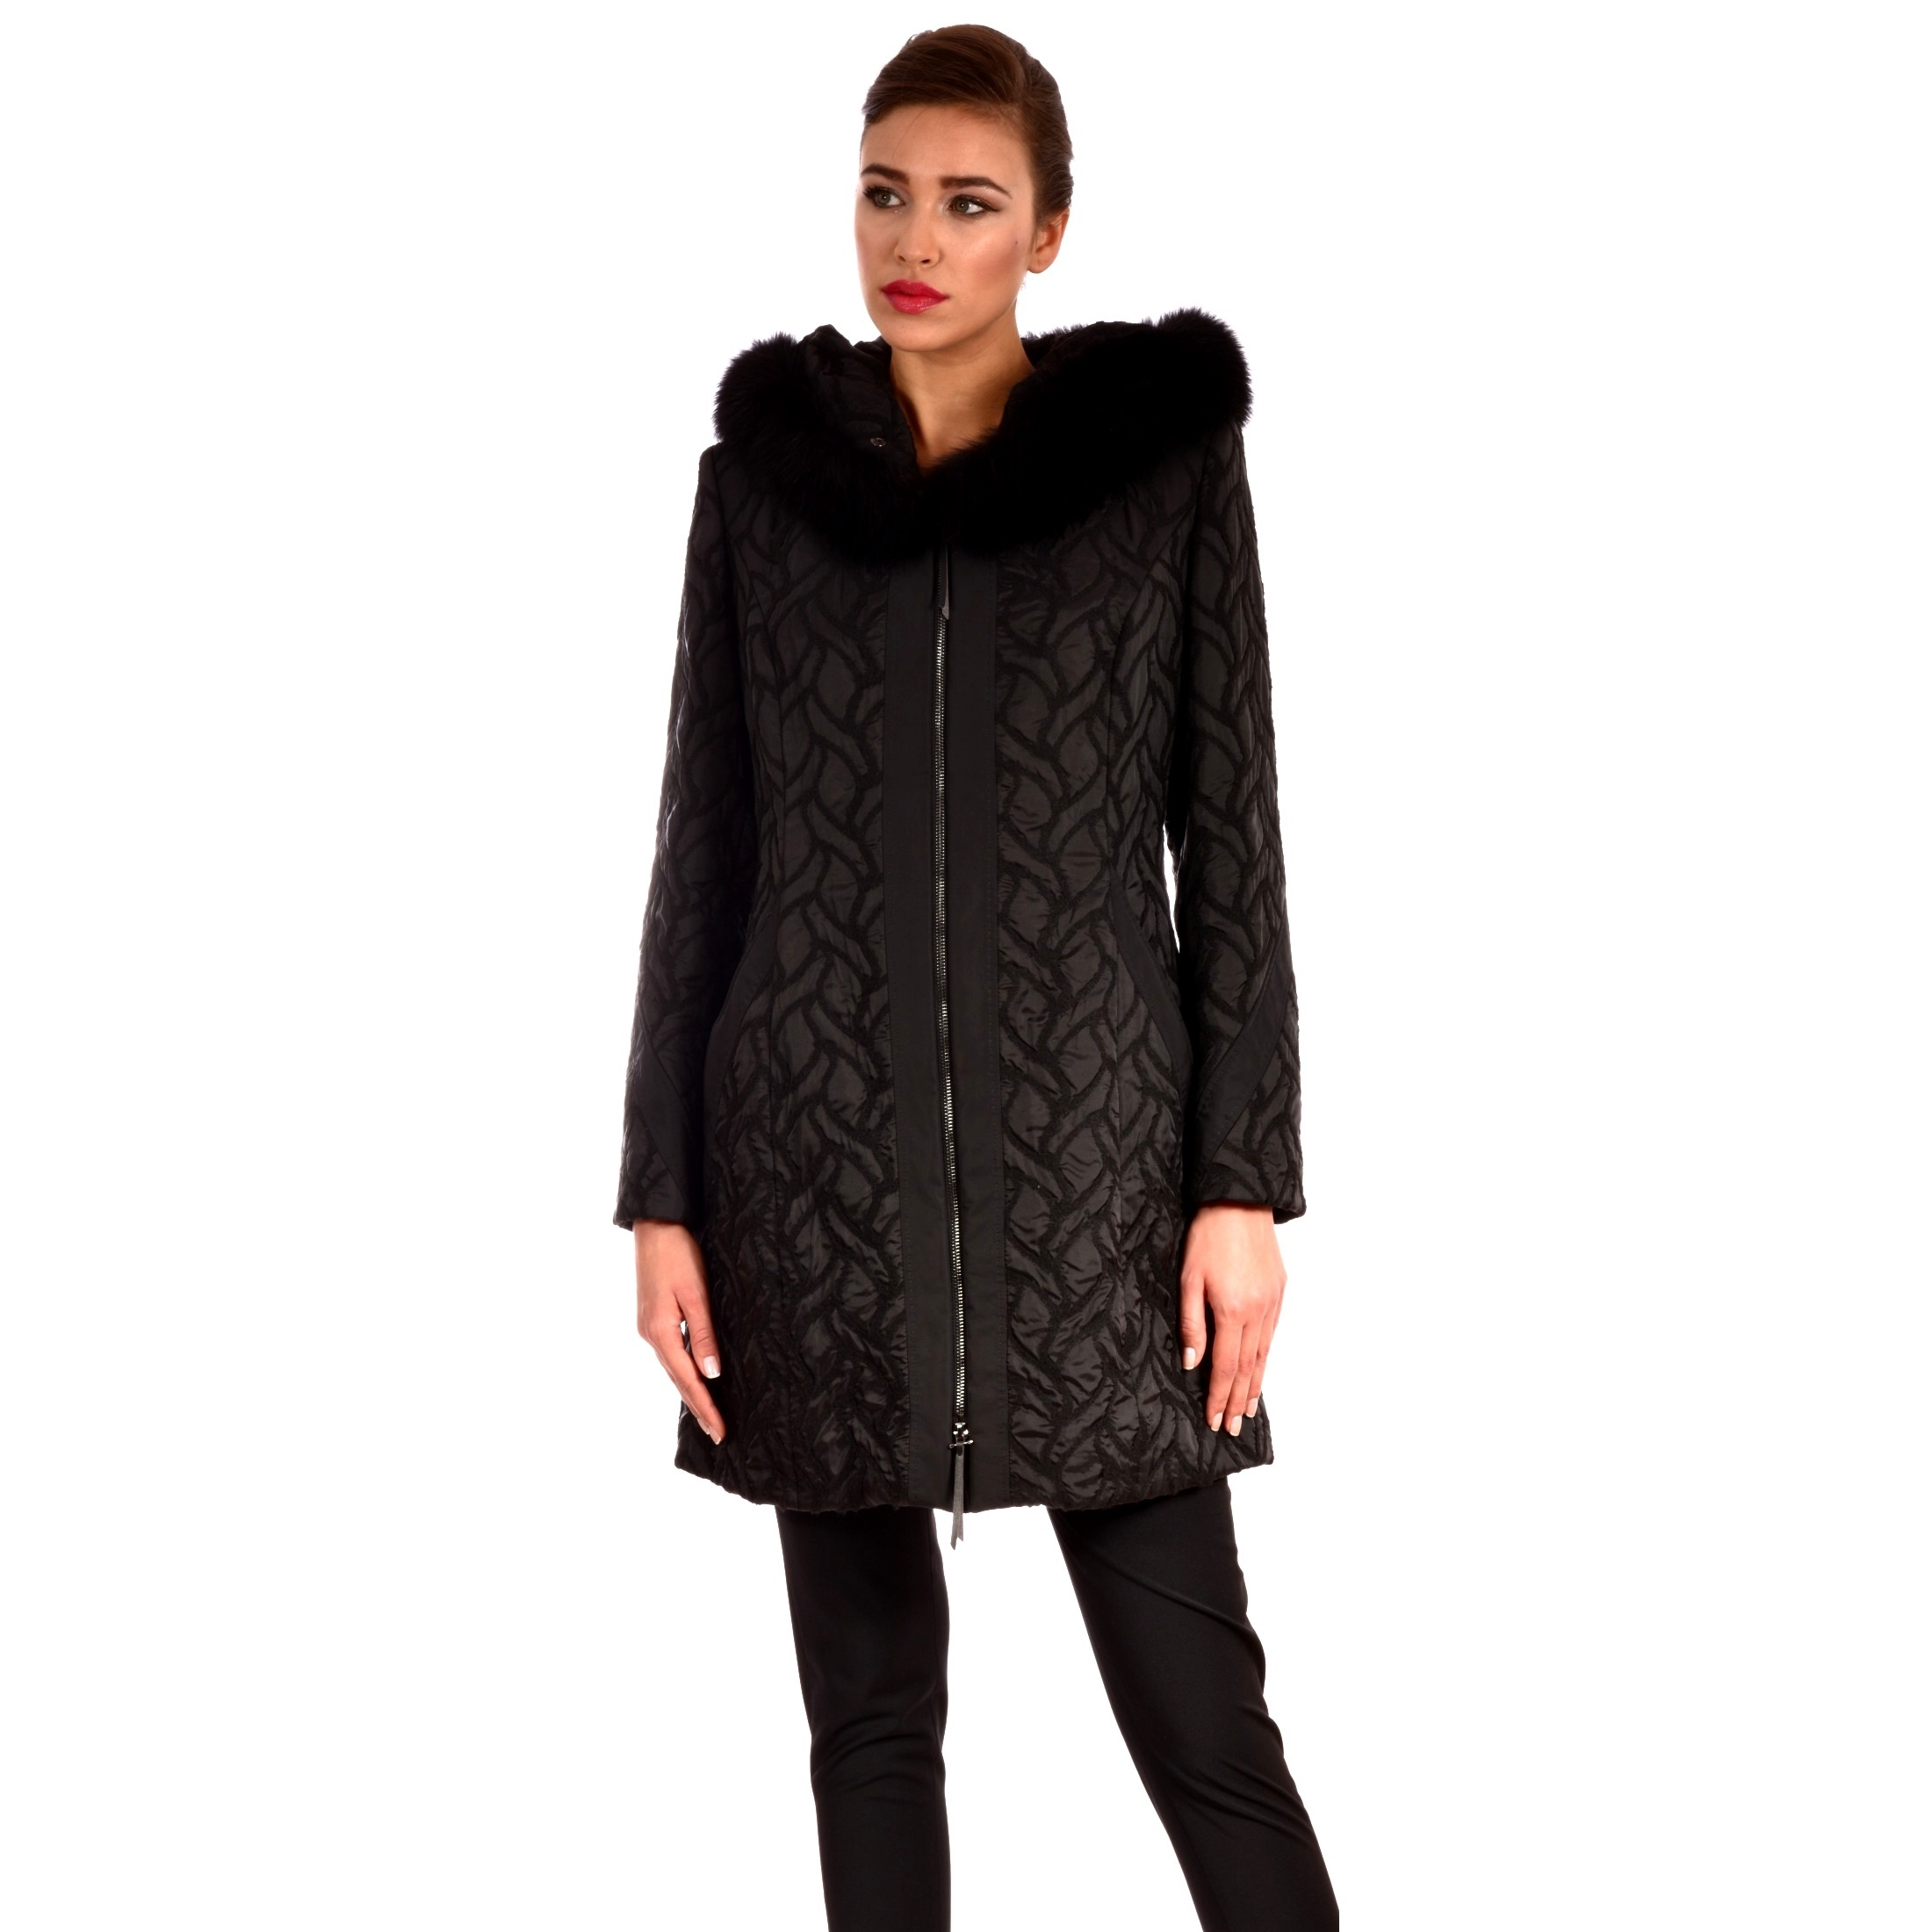 Women's winter jacket with hood and natural fur Lady M by Maria fashion.